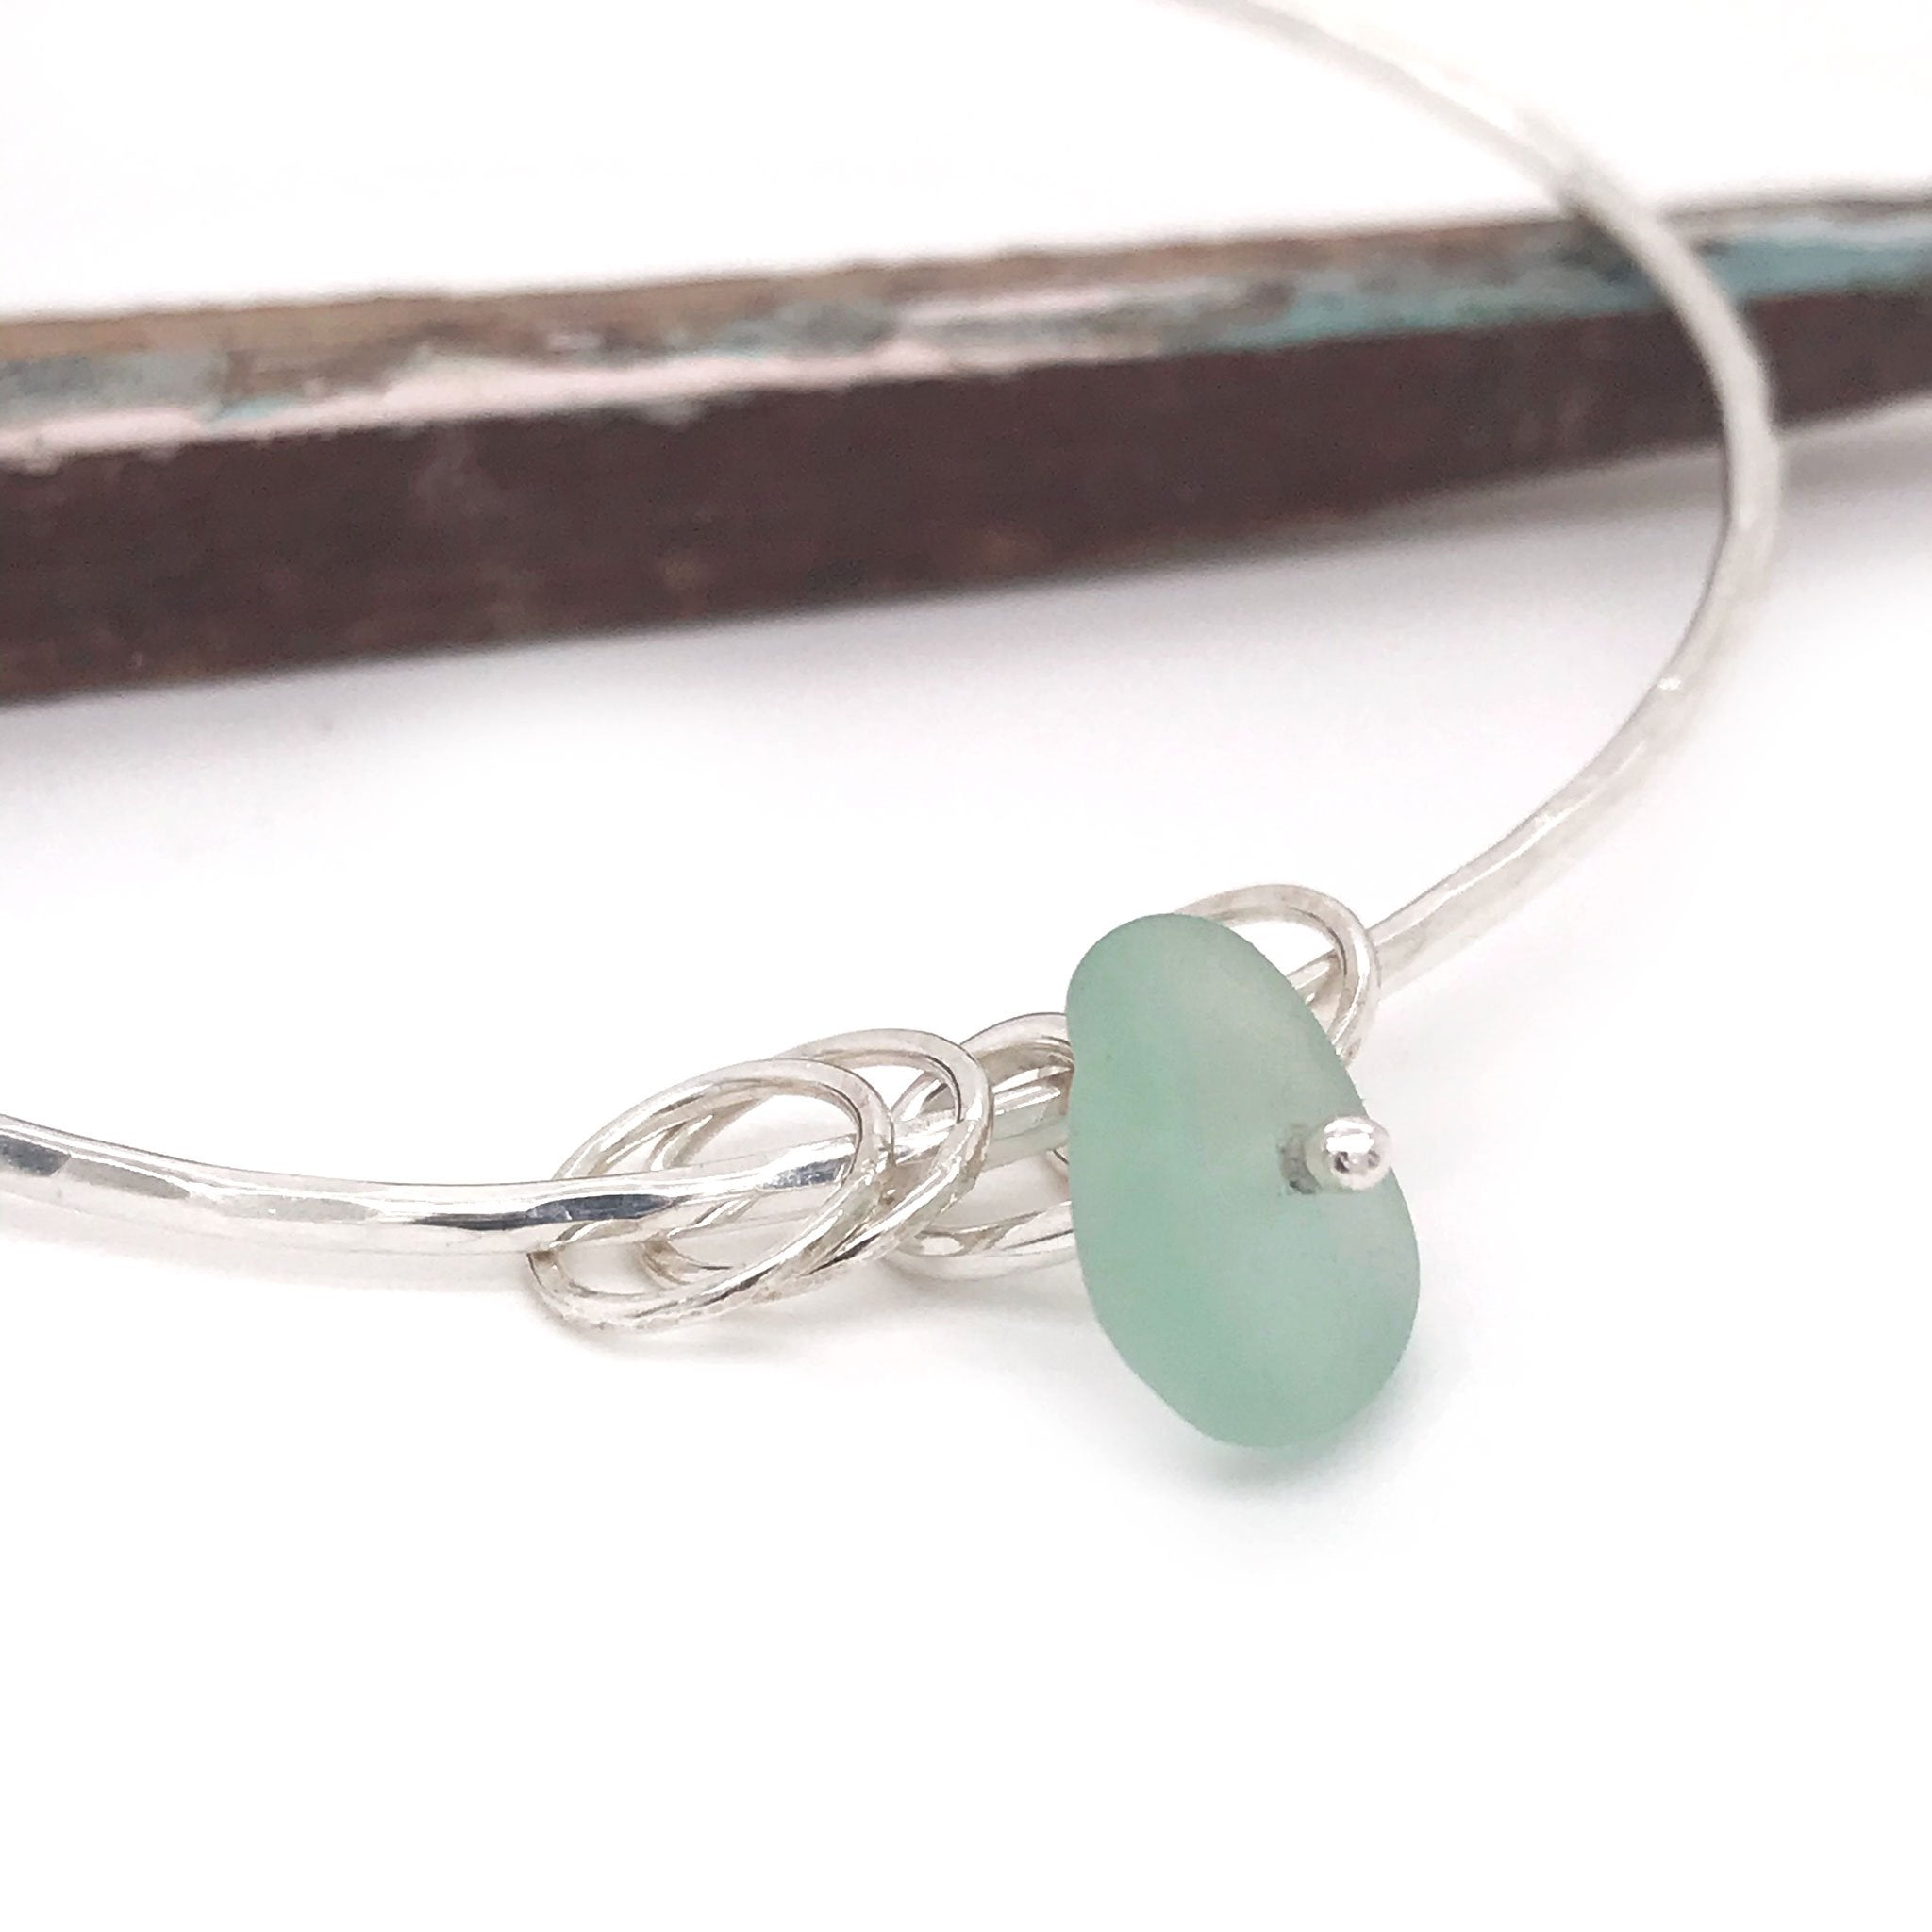 seafoam seaglass bangle silver kriket broadhurst jewelry